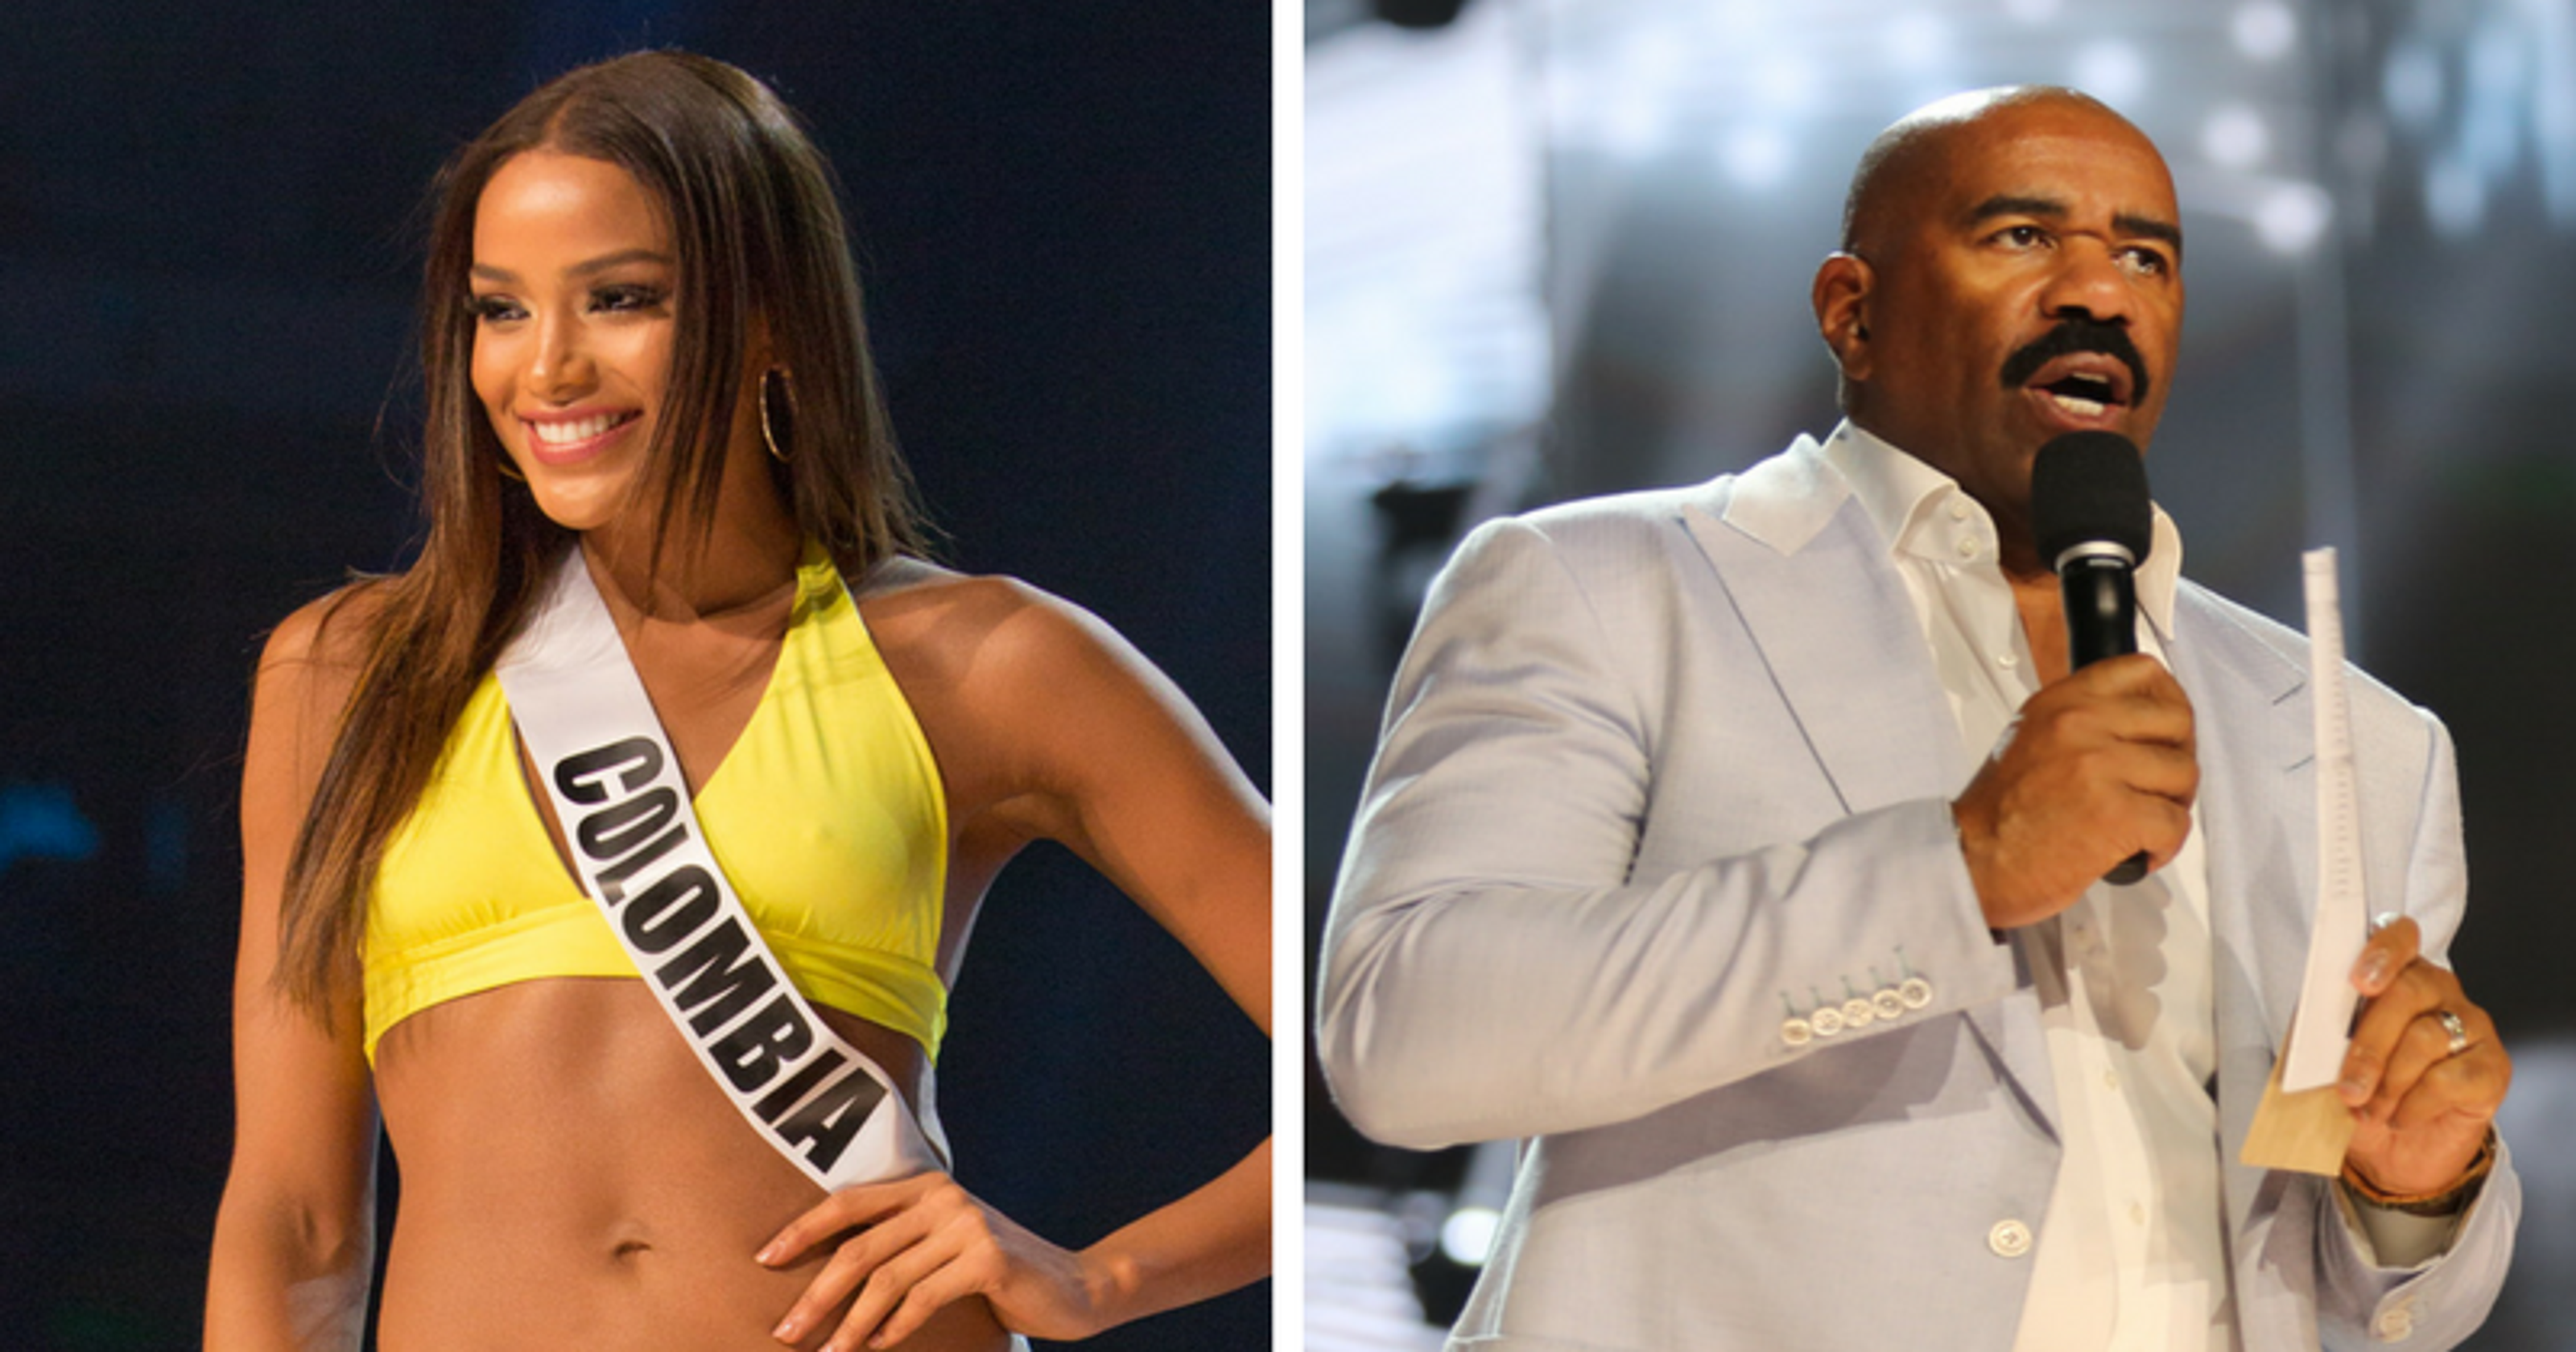 People hate you': Miss Colombia roasts Steve Harvey at Miss Universe